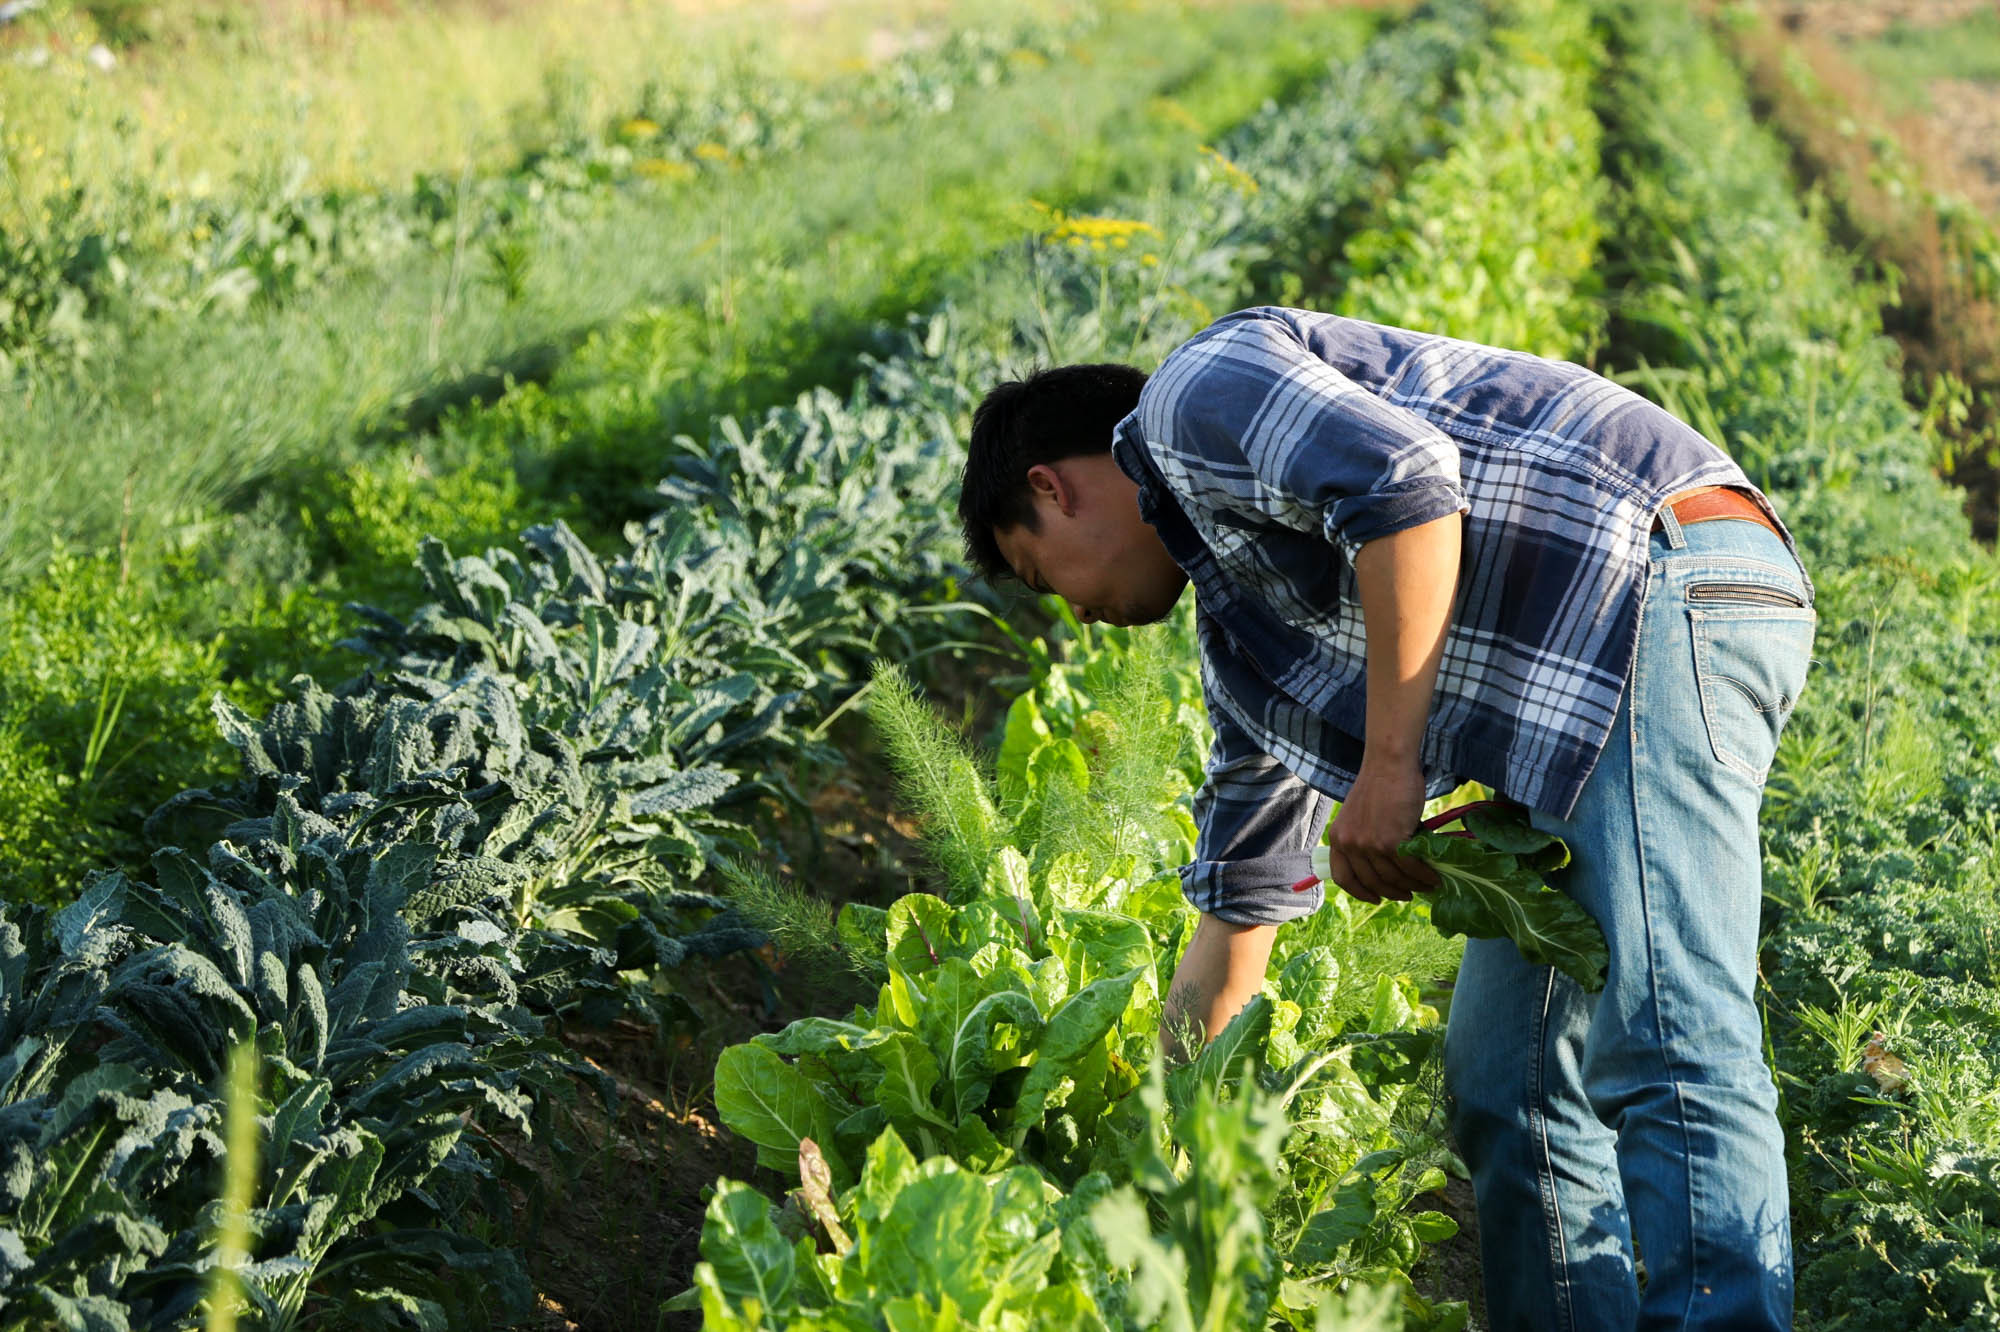 A farmer checks on produce at Padao Farms, a 15-acre plot run by the Yang family in Fresno, Calif., that specializes in Asian greens.A farmer checks on produce at Padao Farms, a 15-acre plot run by the Yang family in Fresno, Calif., that specializes in Asian greens.